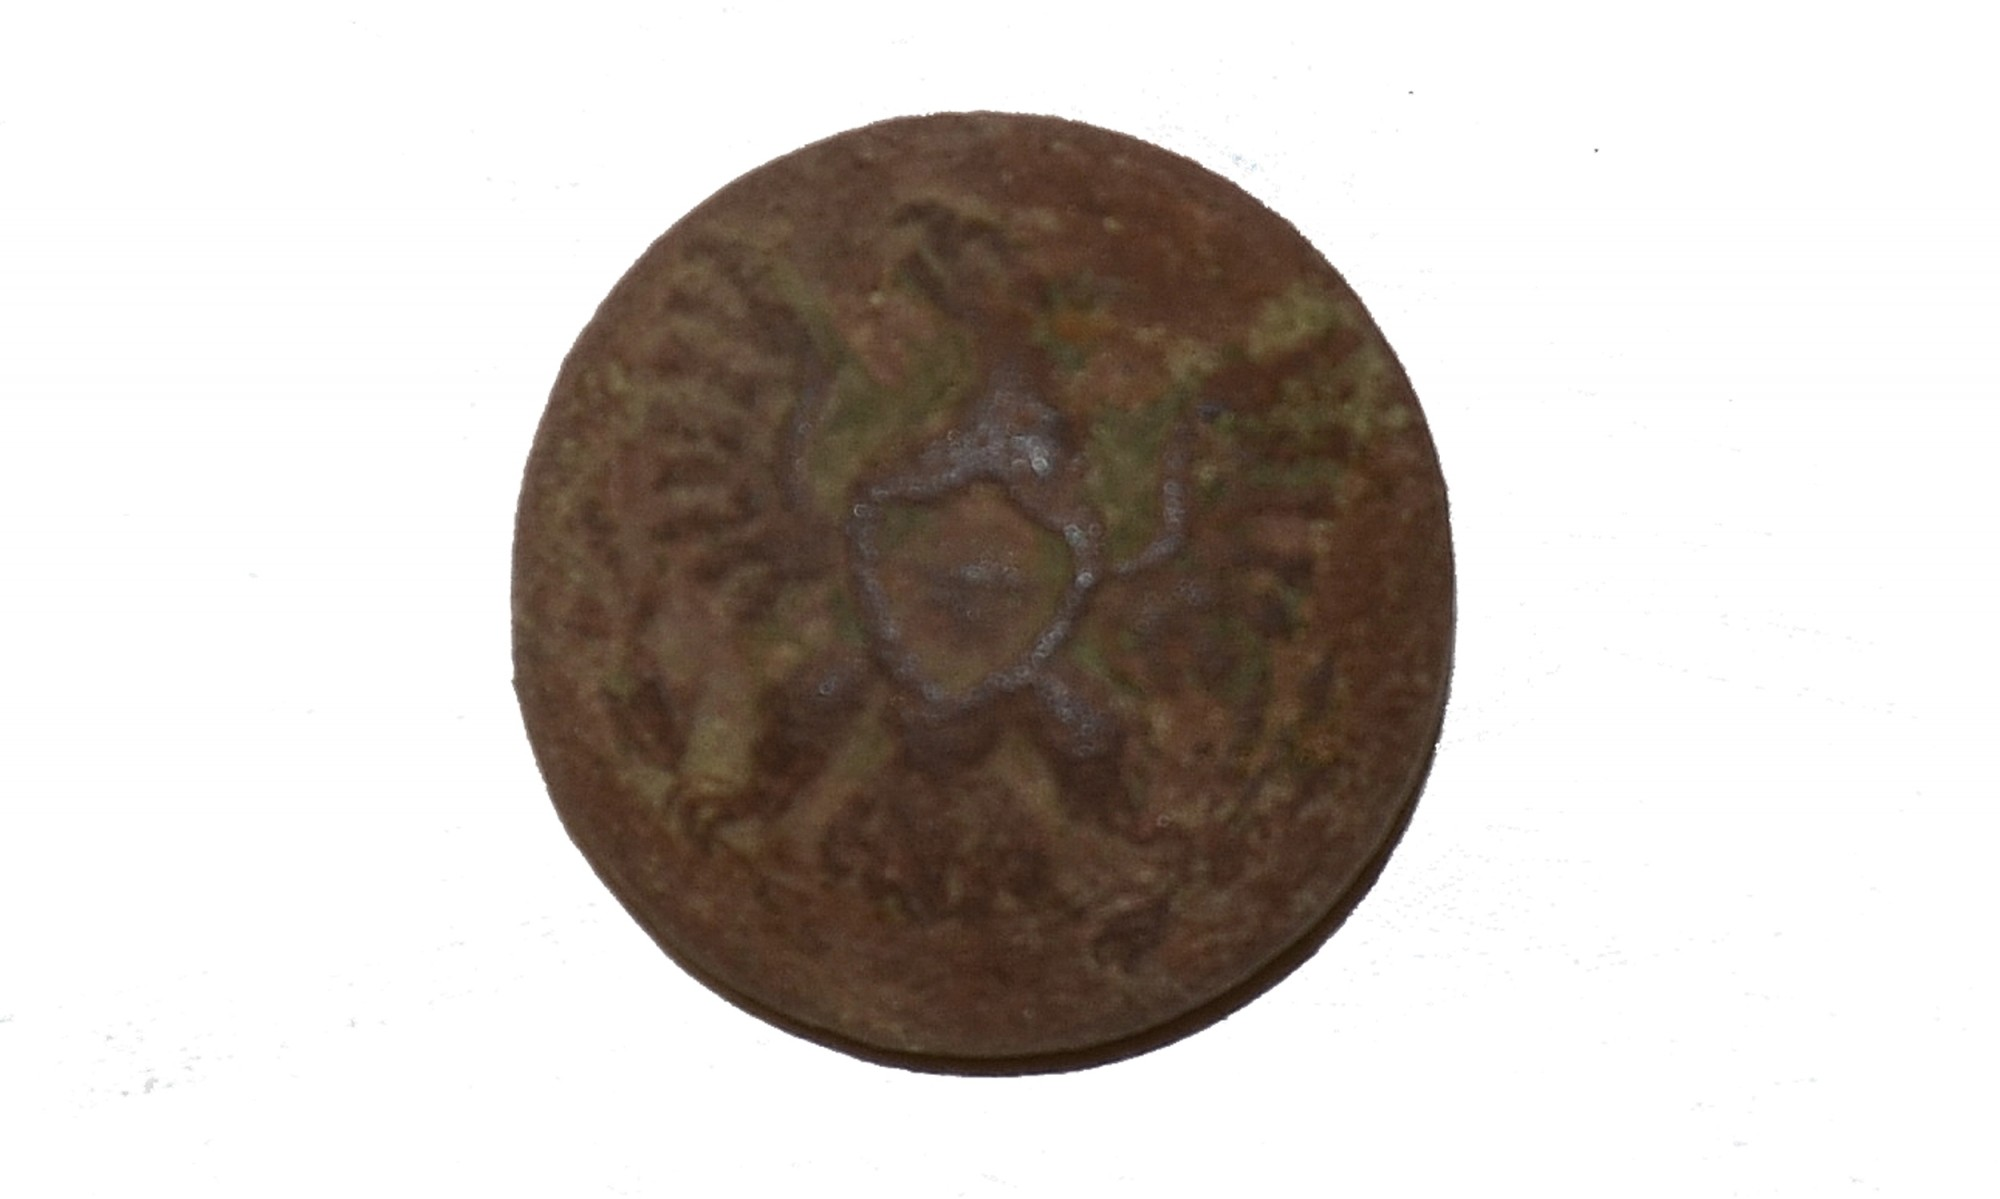 US GENERAL SERVICE EAGLE CUFF BUTTON RECOVERED ON THE KLINGEL FARM, GETTYSBURG